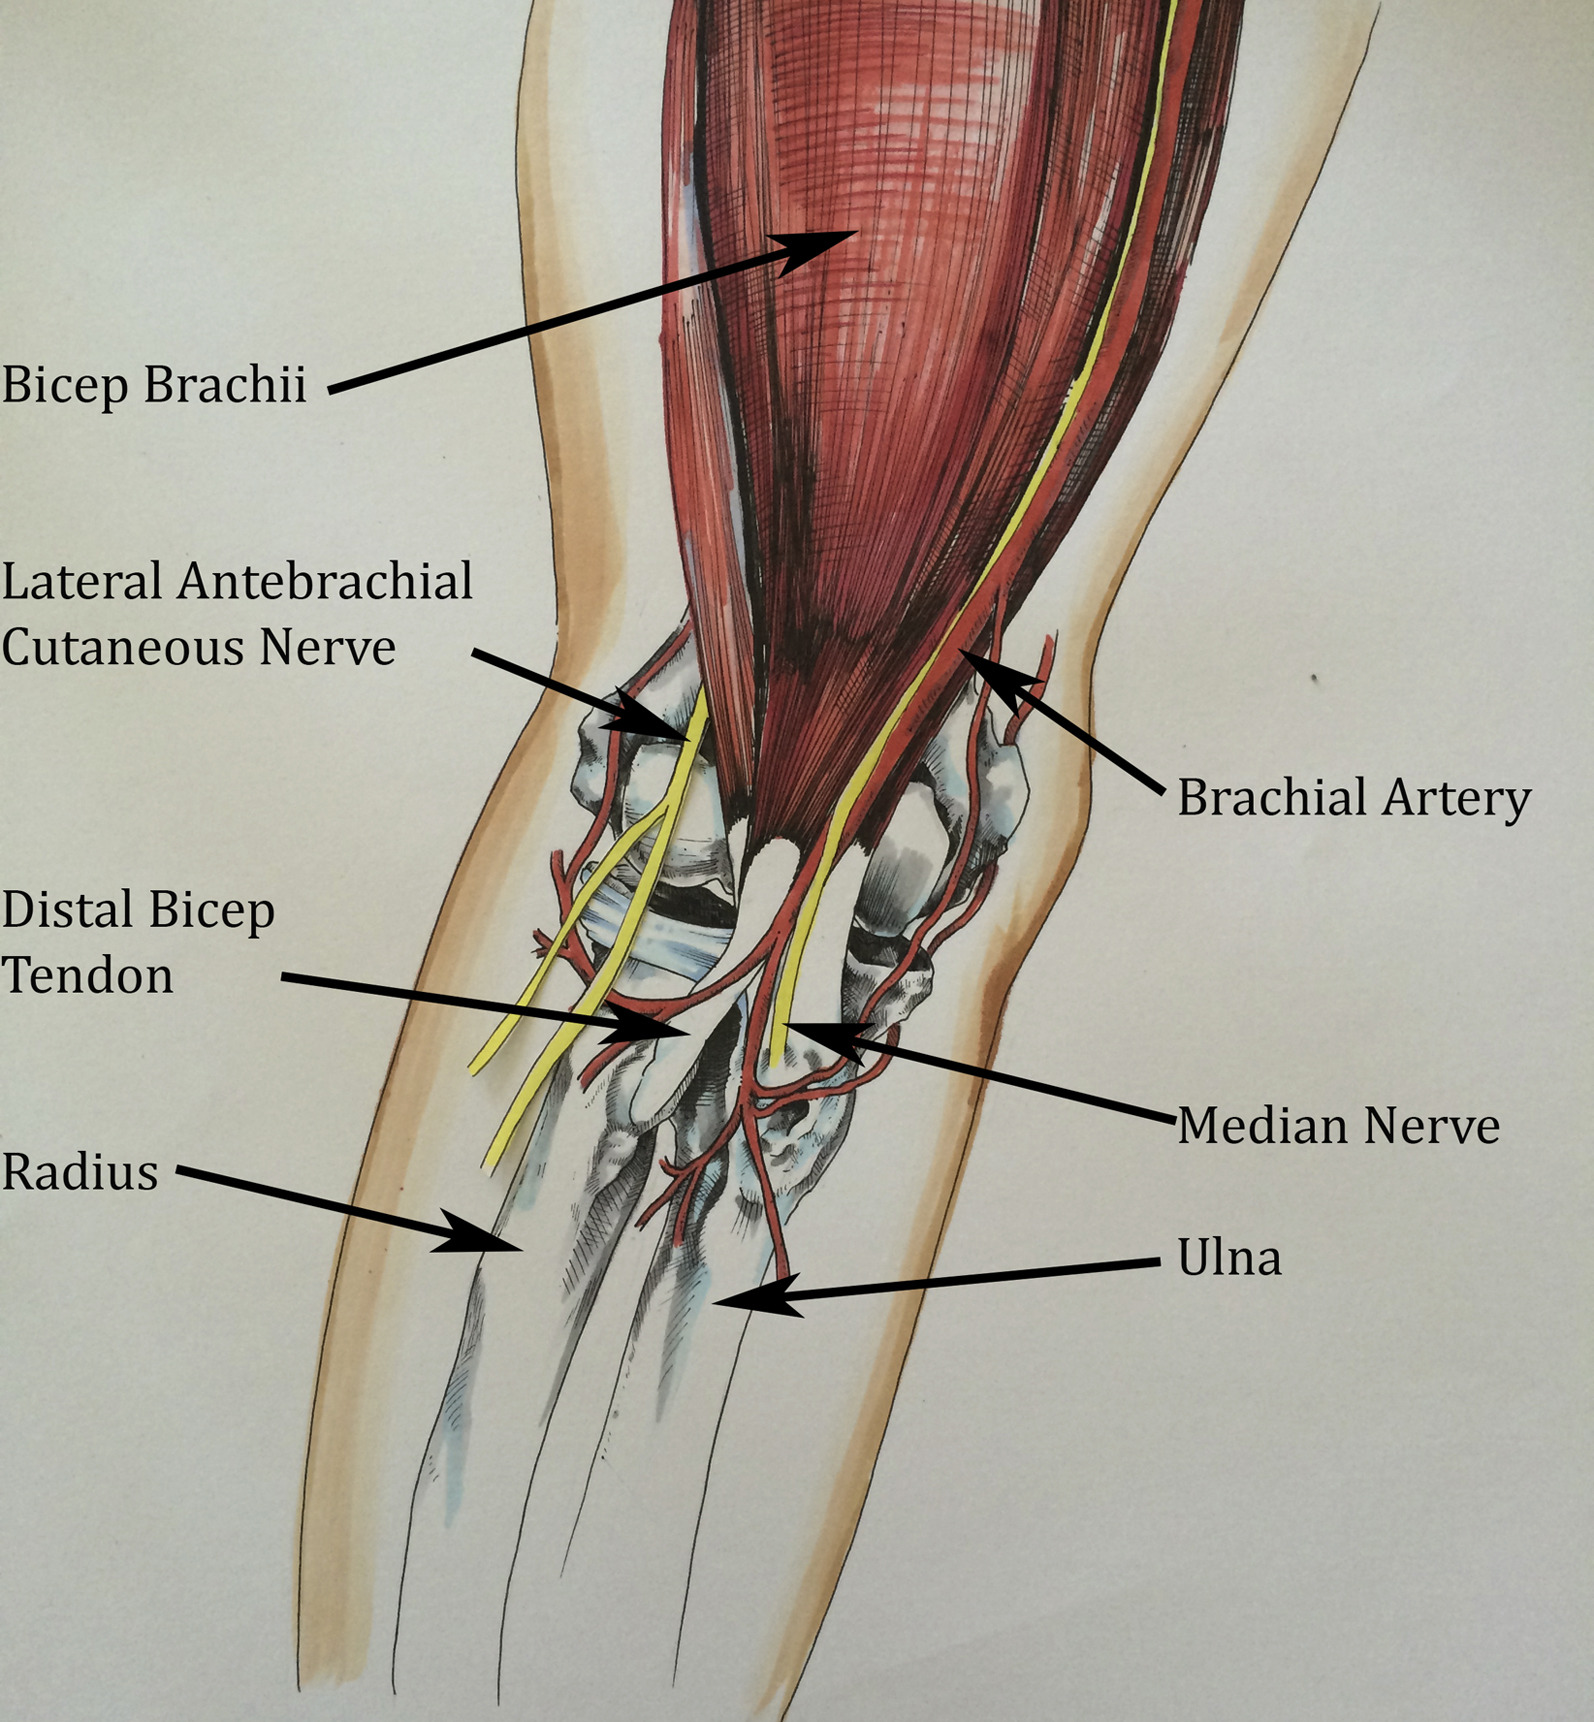 Ultrasound-Guided Distal Bicep Tendon Injection Using a Posterior ...